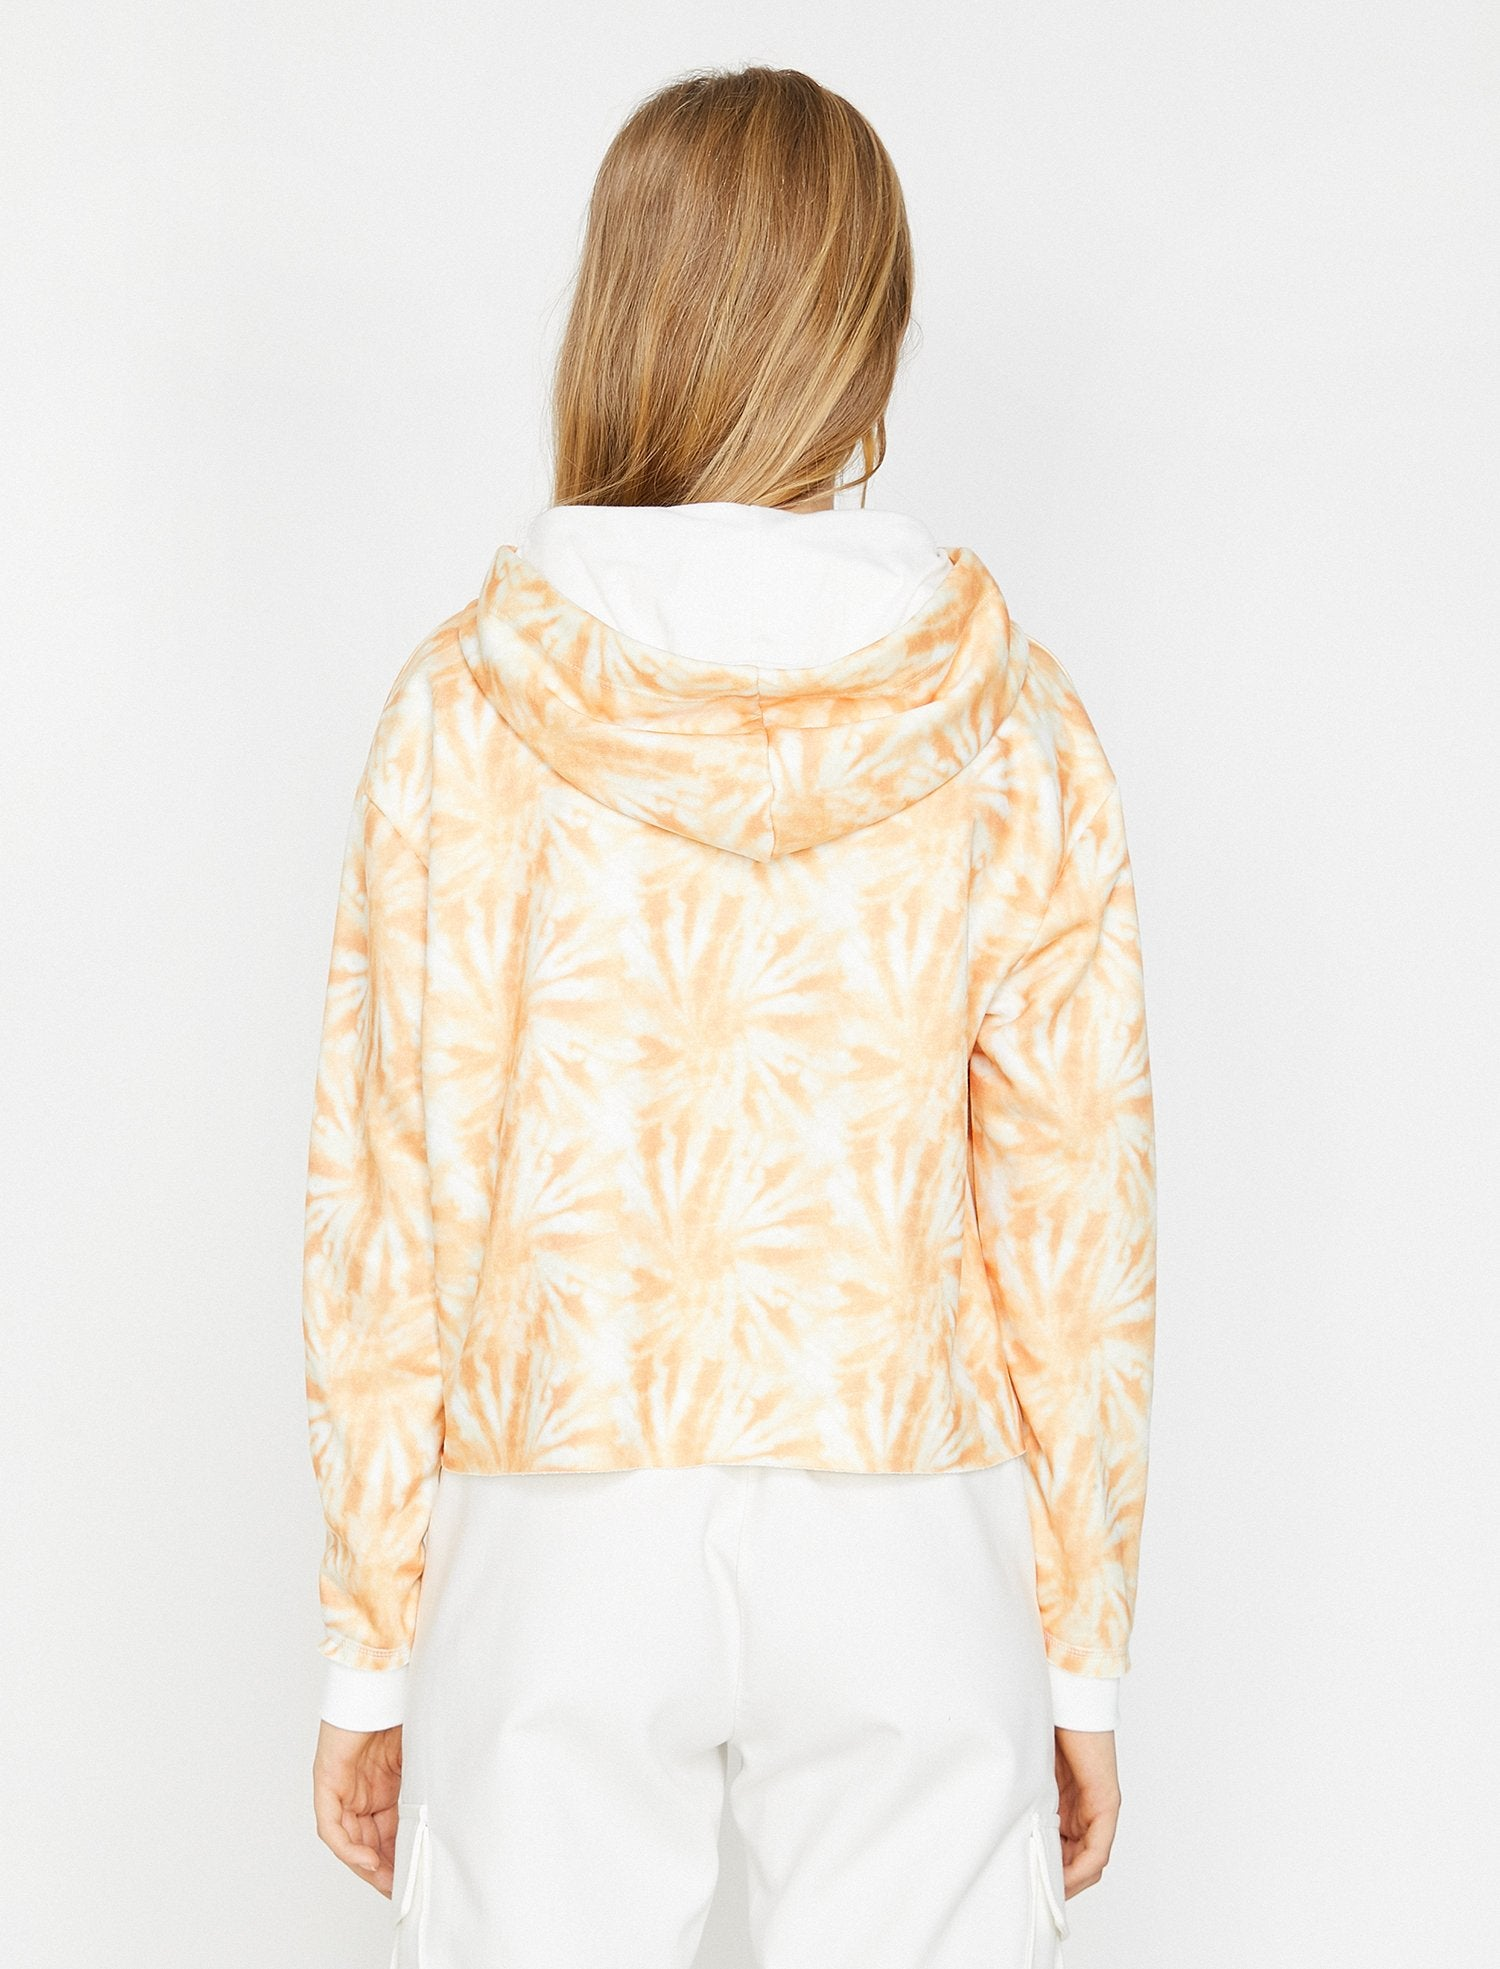 Tie Dye Cropped Sweatshirt in Orange